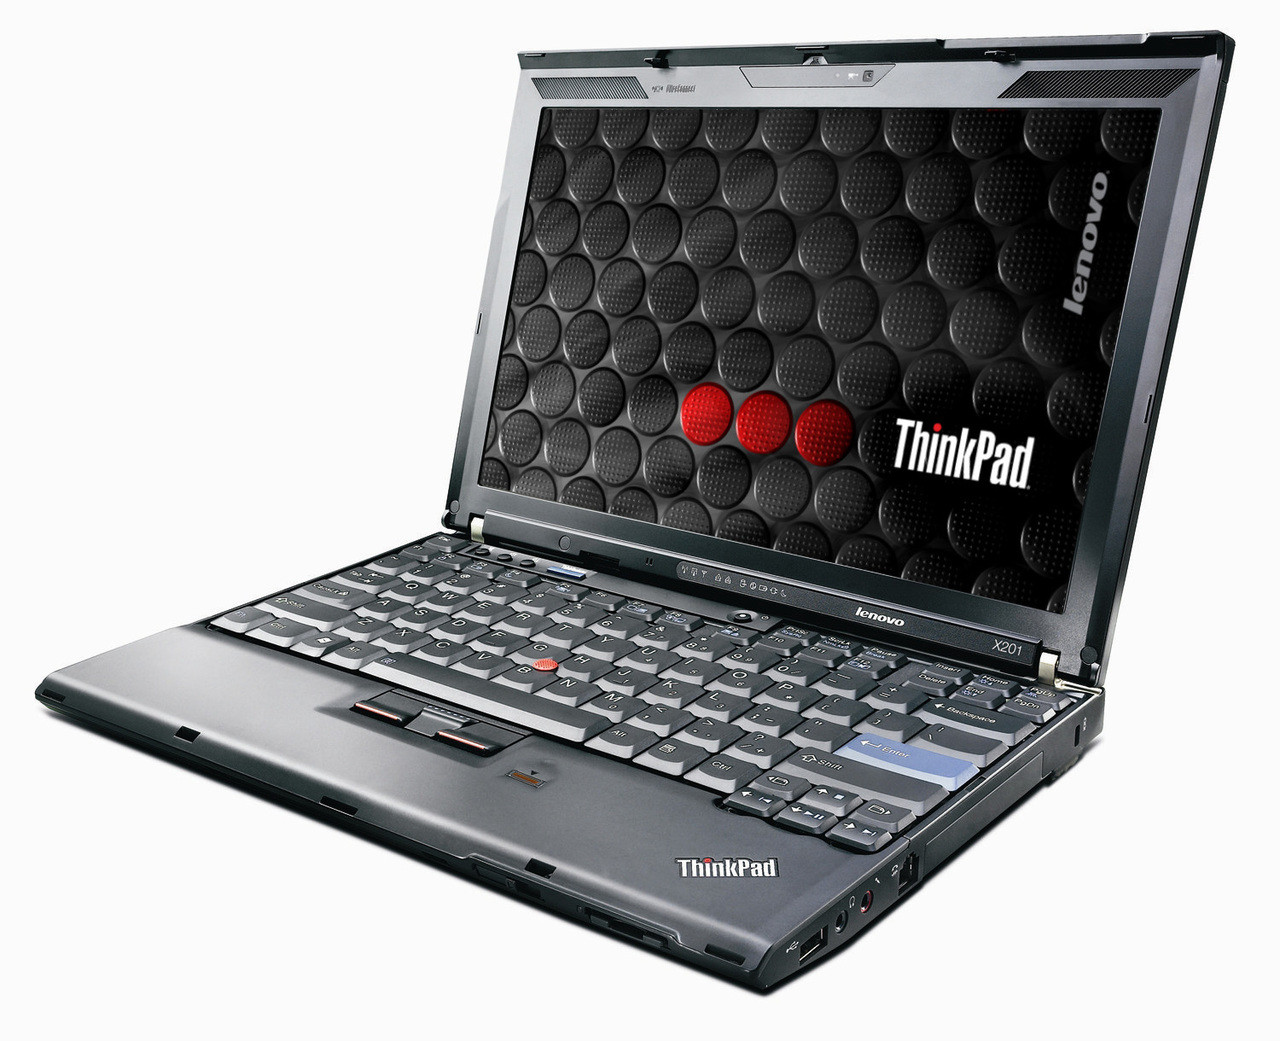 Lenovo Thinkpad X201 - right side view